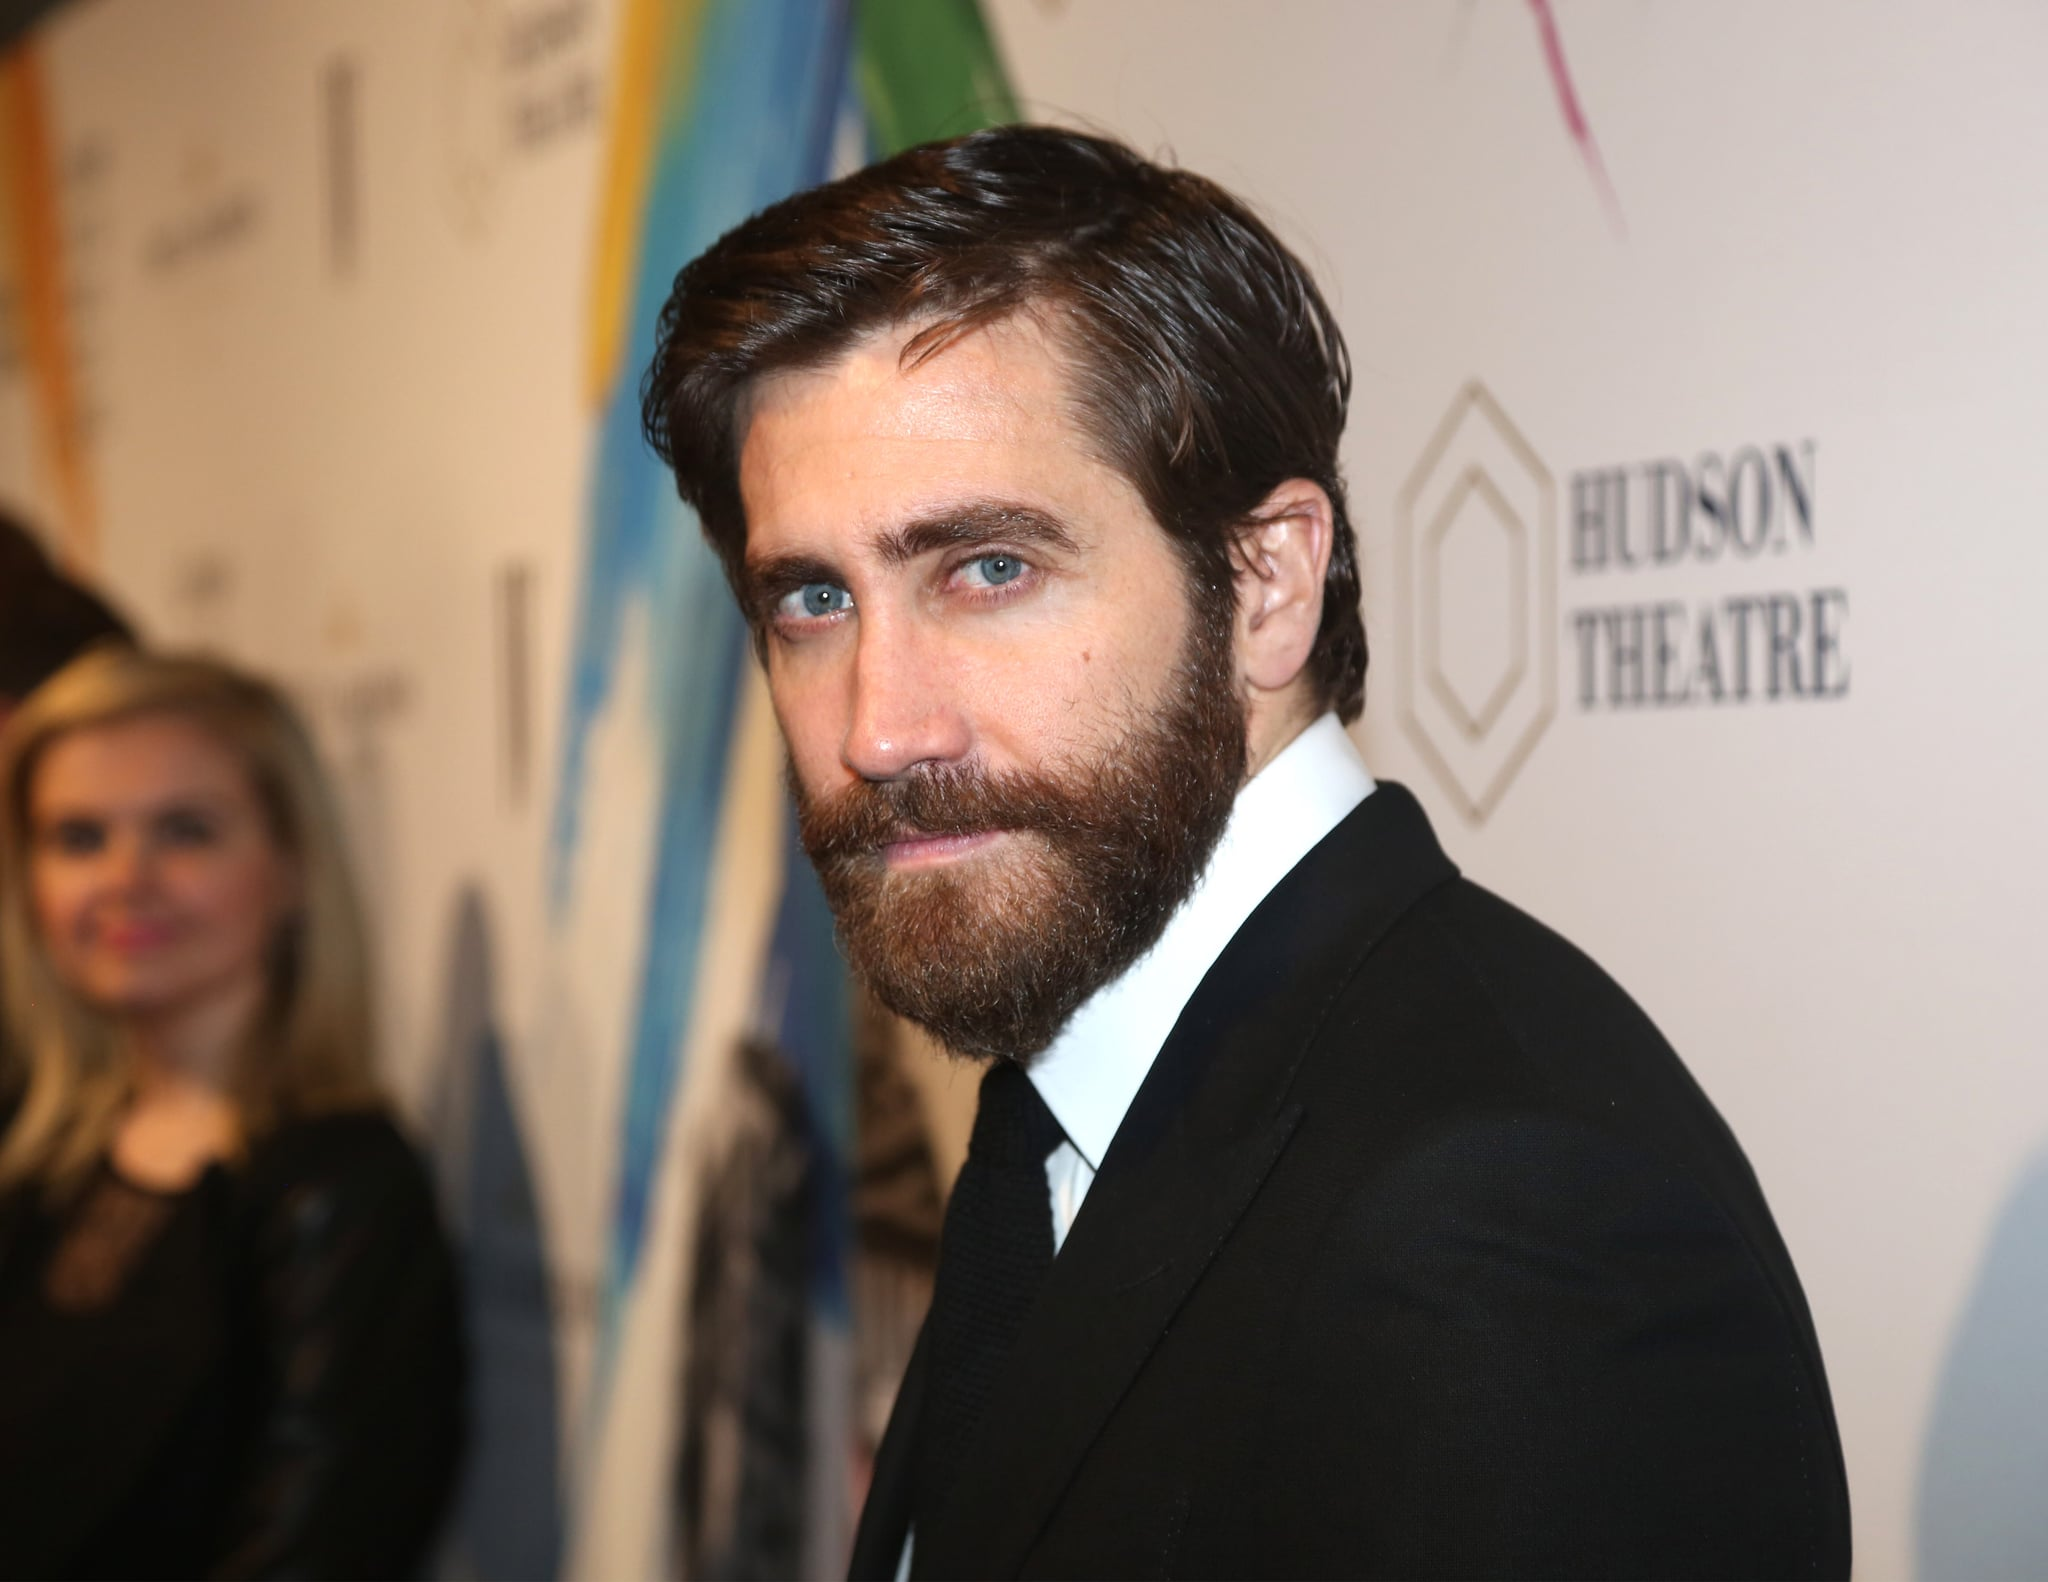 Jake Gyllenhaal Does Not Want to Talk About His Relationship With Taylor Swift, OK?